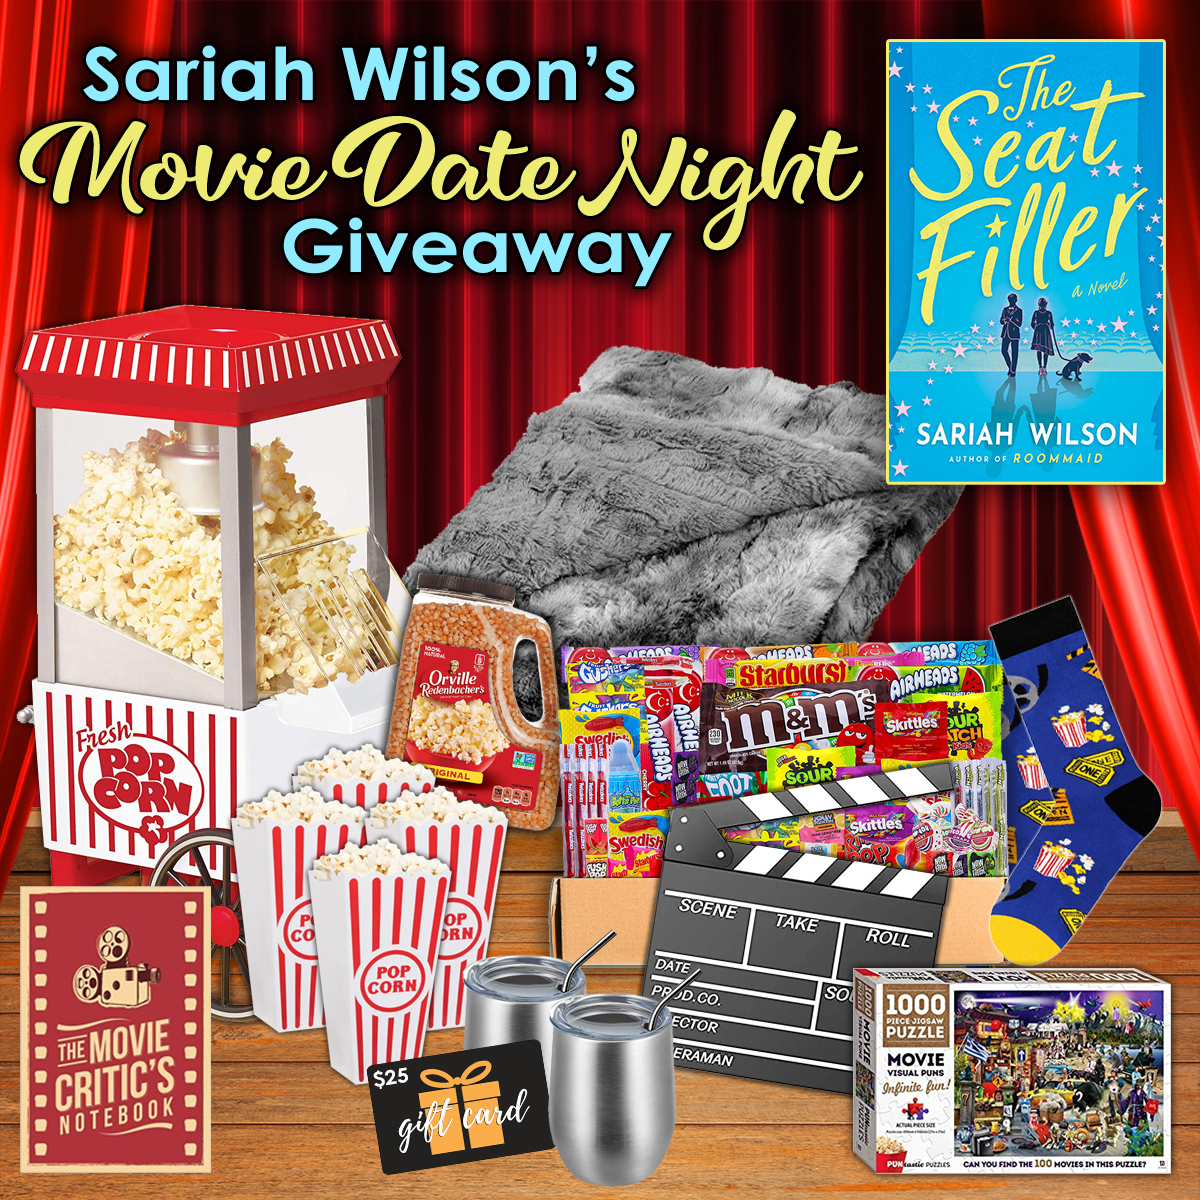 USA Today bestselling author, Sariah Wilson, is launching her latest book, The Seat Filler, and is giving you the chance to win a movie date night prize pack just for checking out her new book.